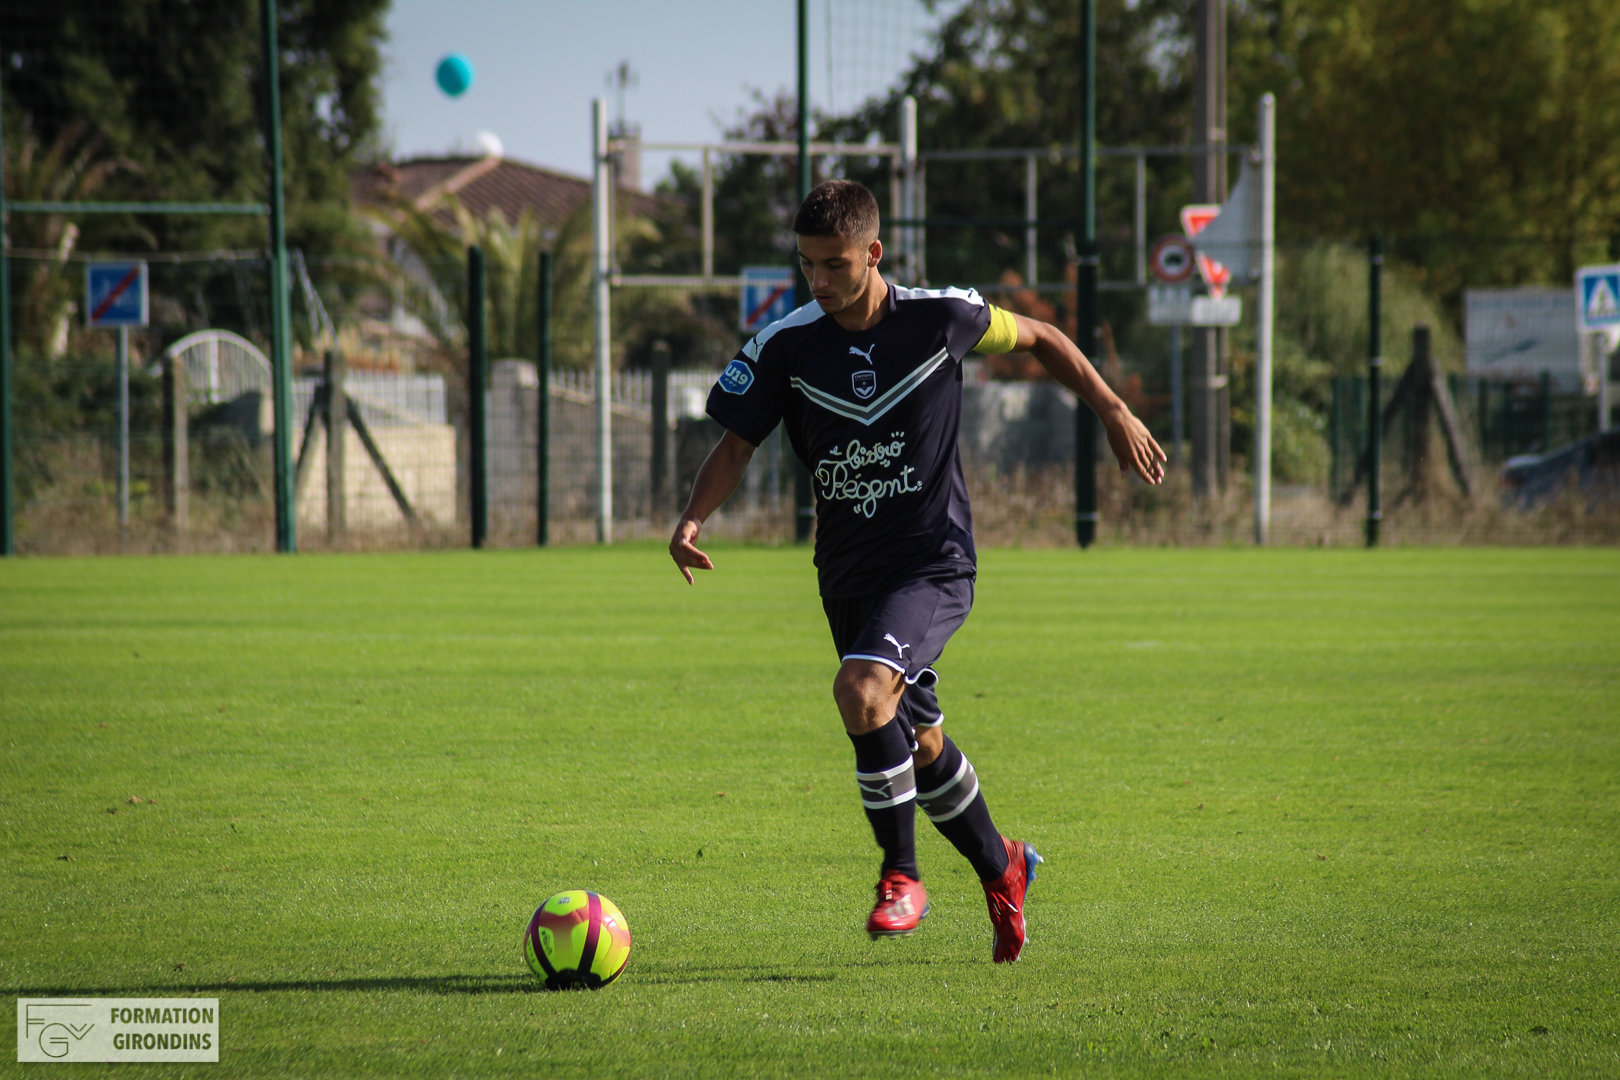 Cfa Girondins : Premier revers pour les Girondins contre Angers - Formation Girondins